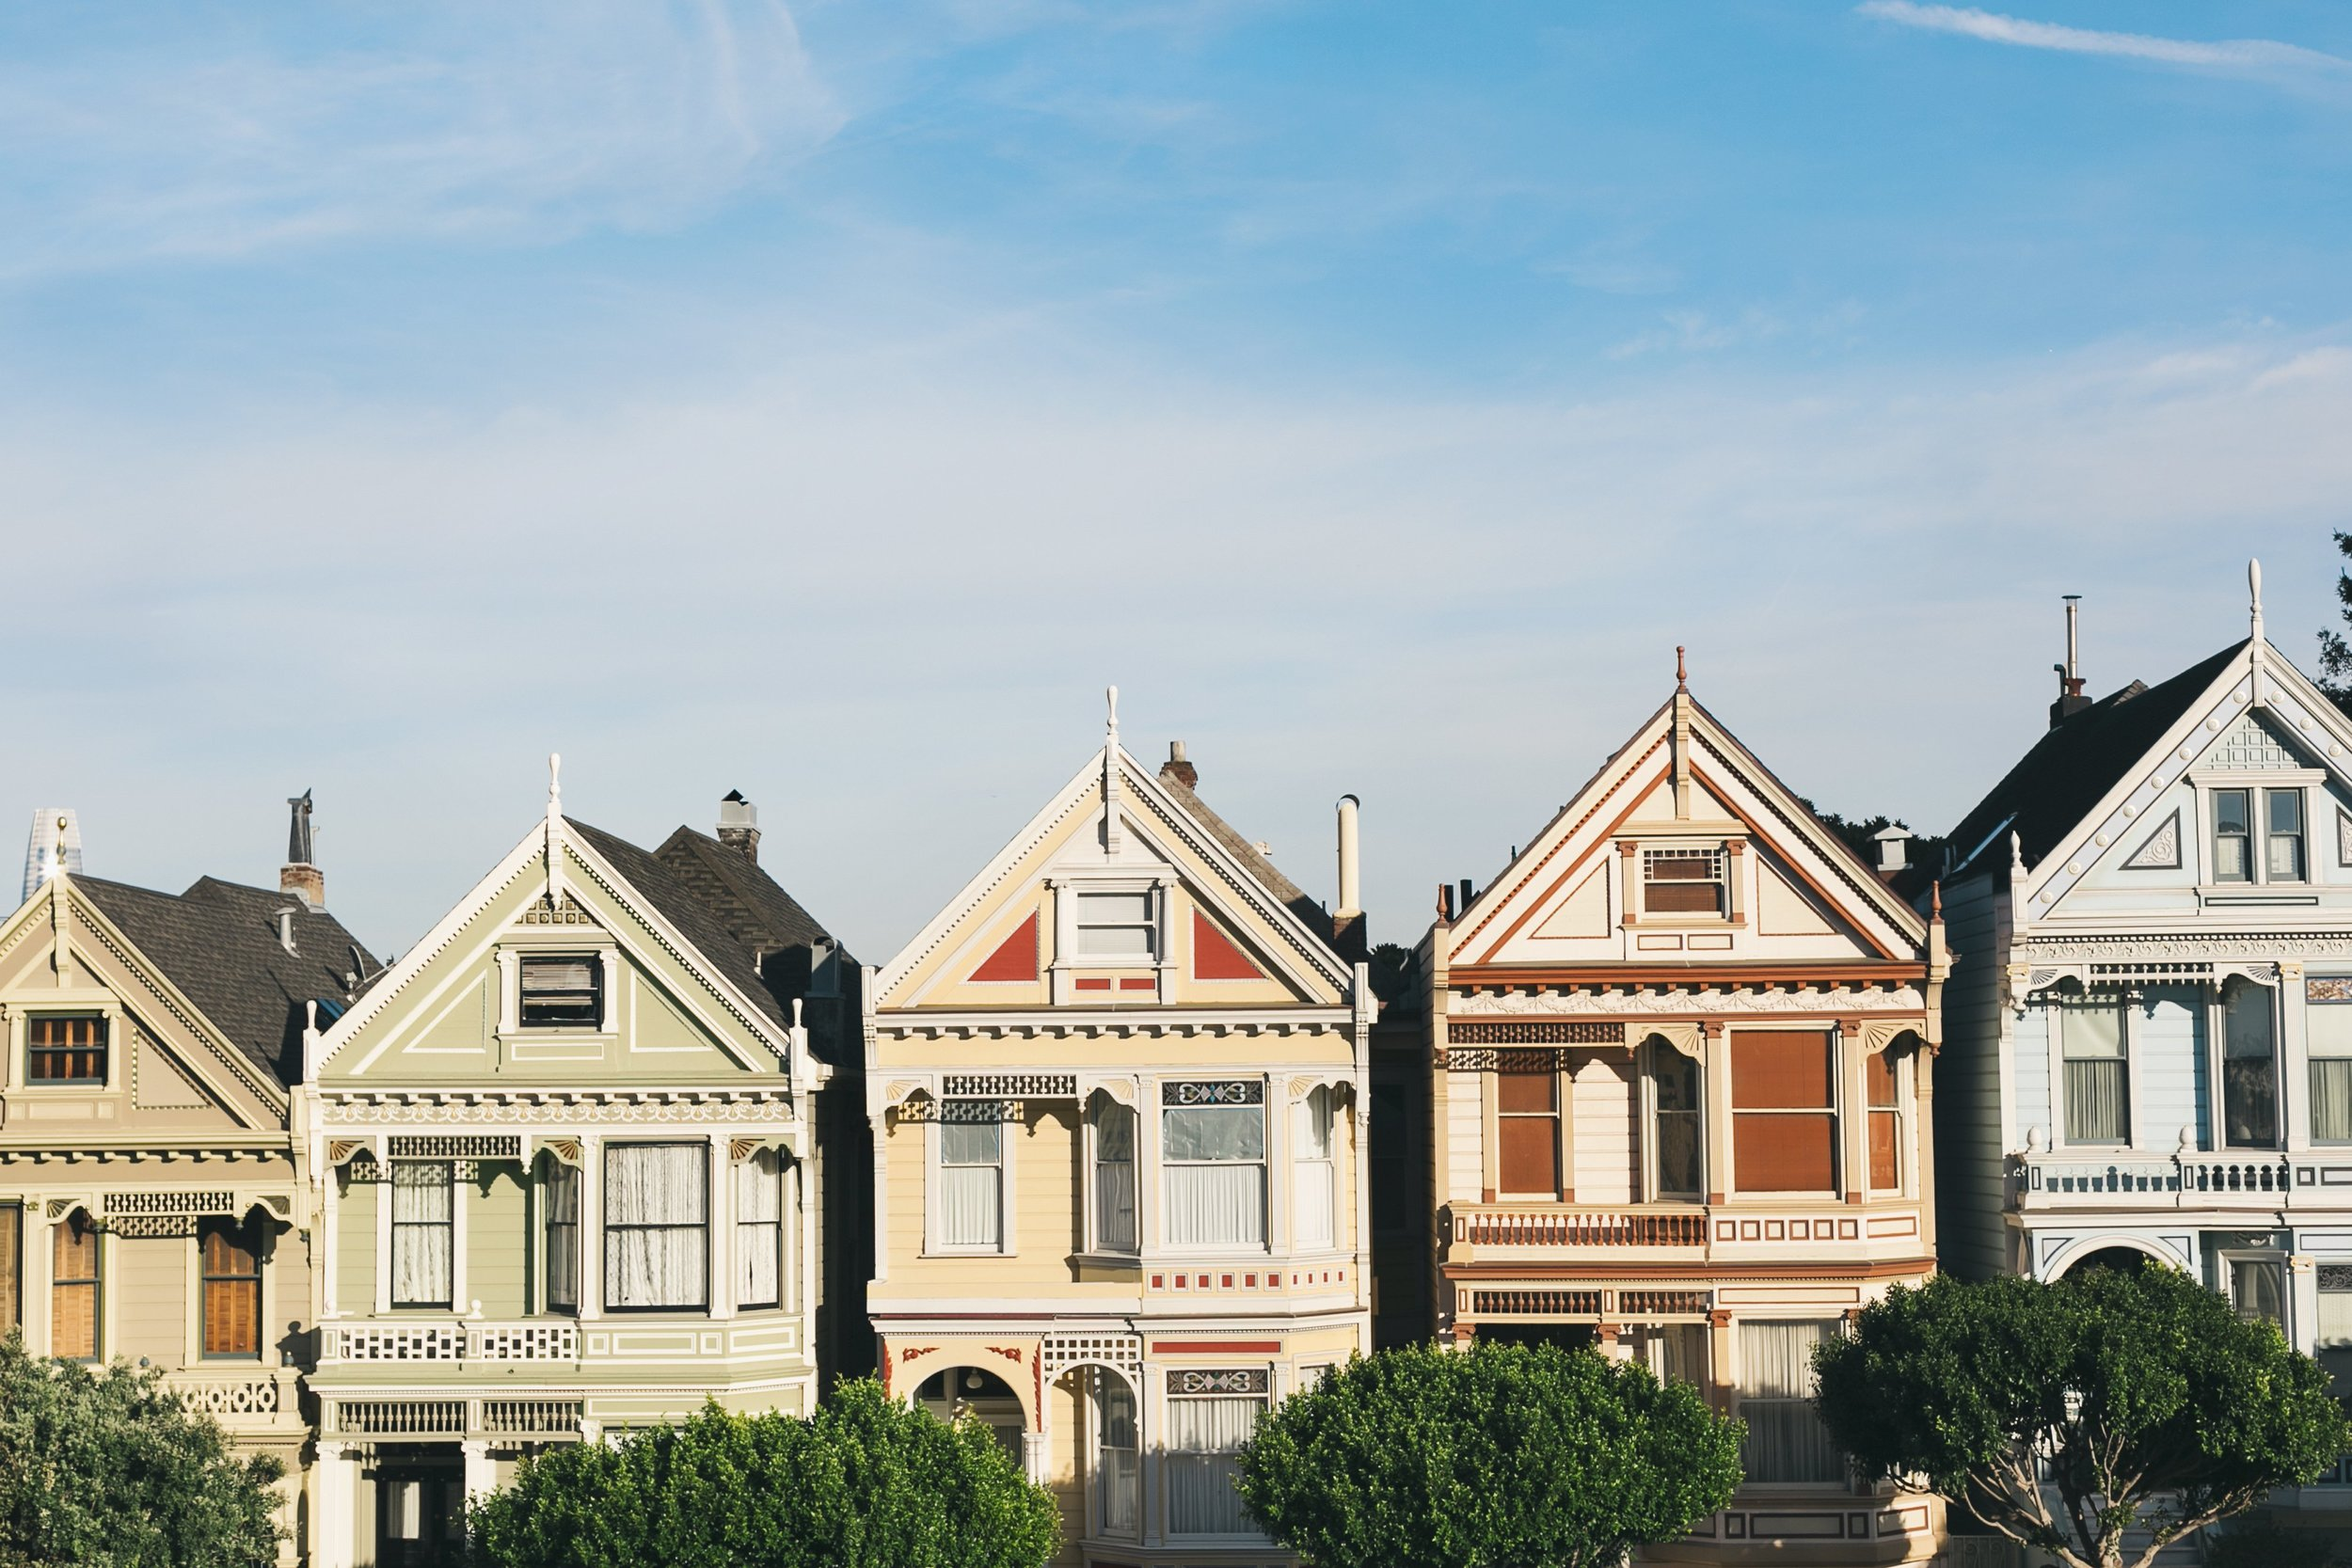 tbh, not even the prettiest houses in the city